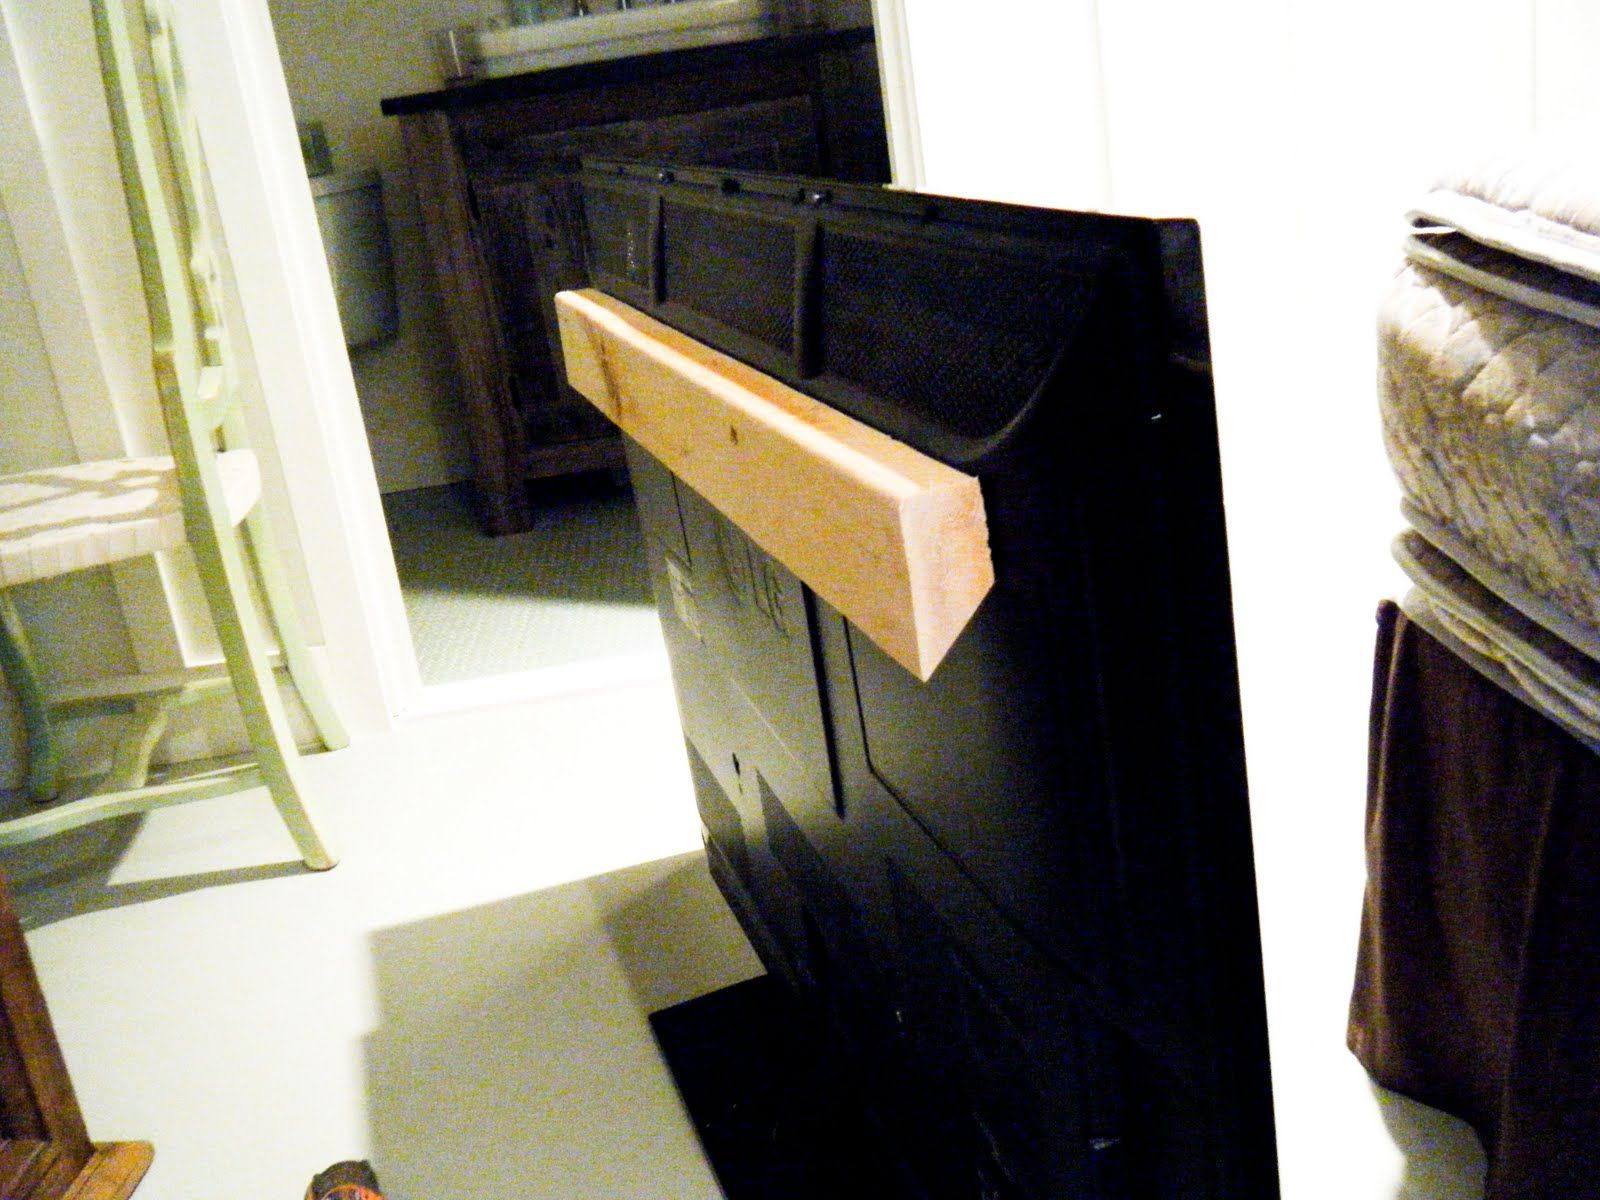 The French Cleat Or The Cheapest Way To Hang A Tv On The